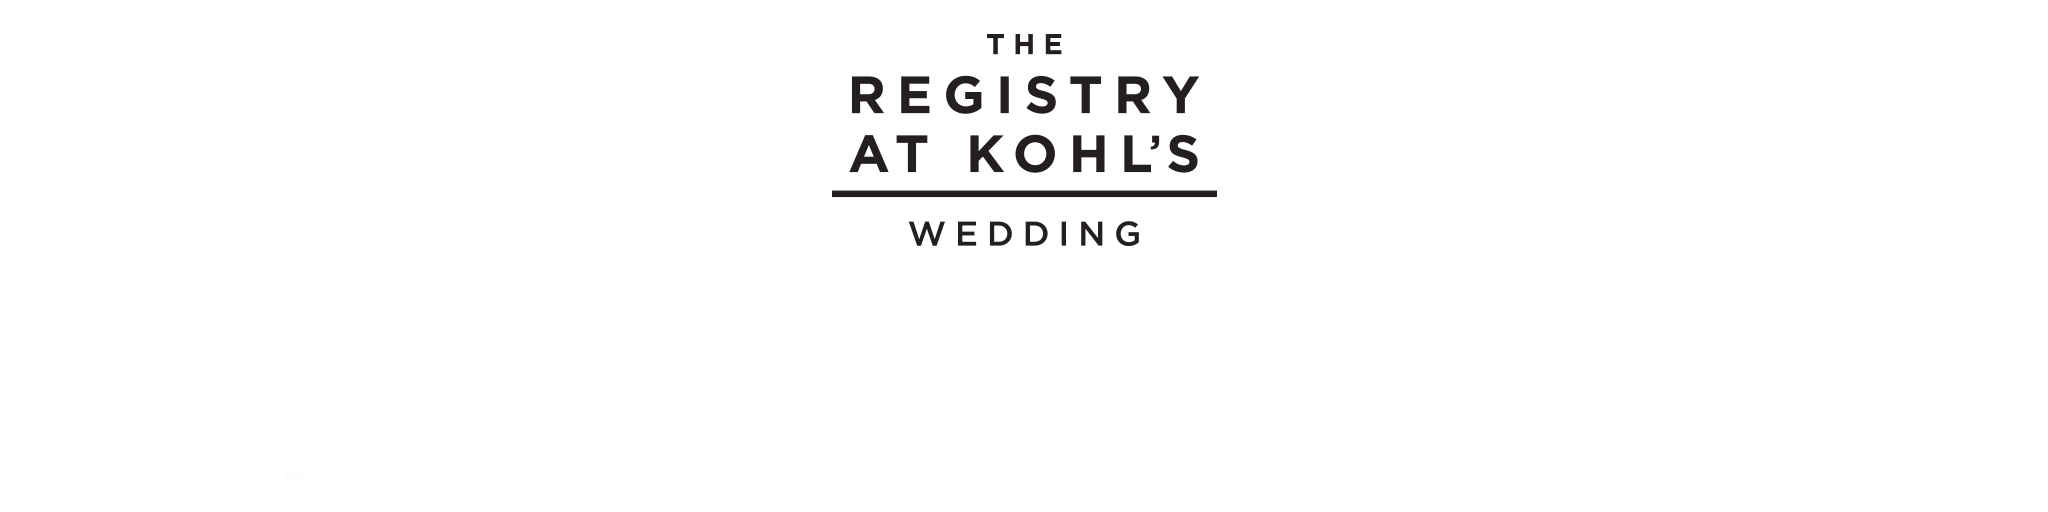 The Wedding Registry at Kohl's